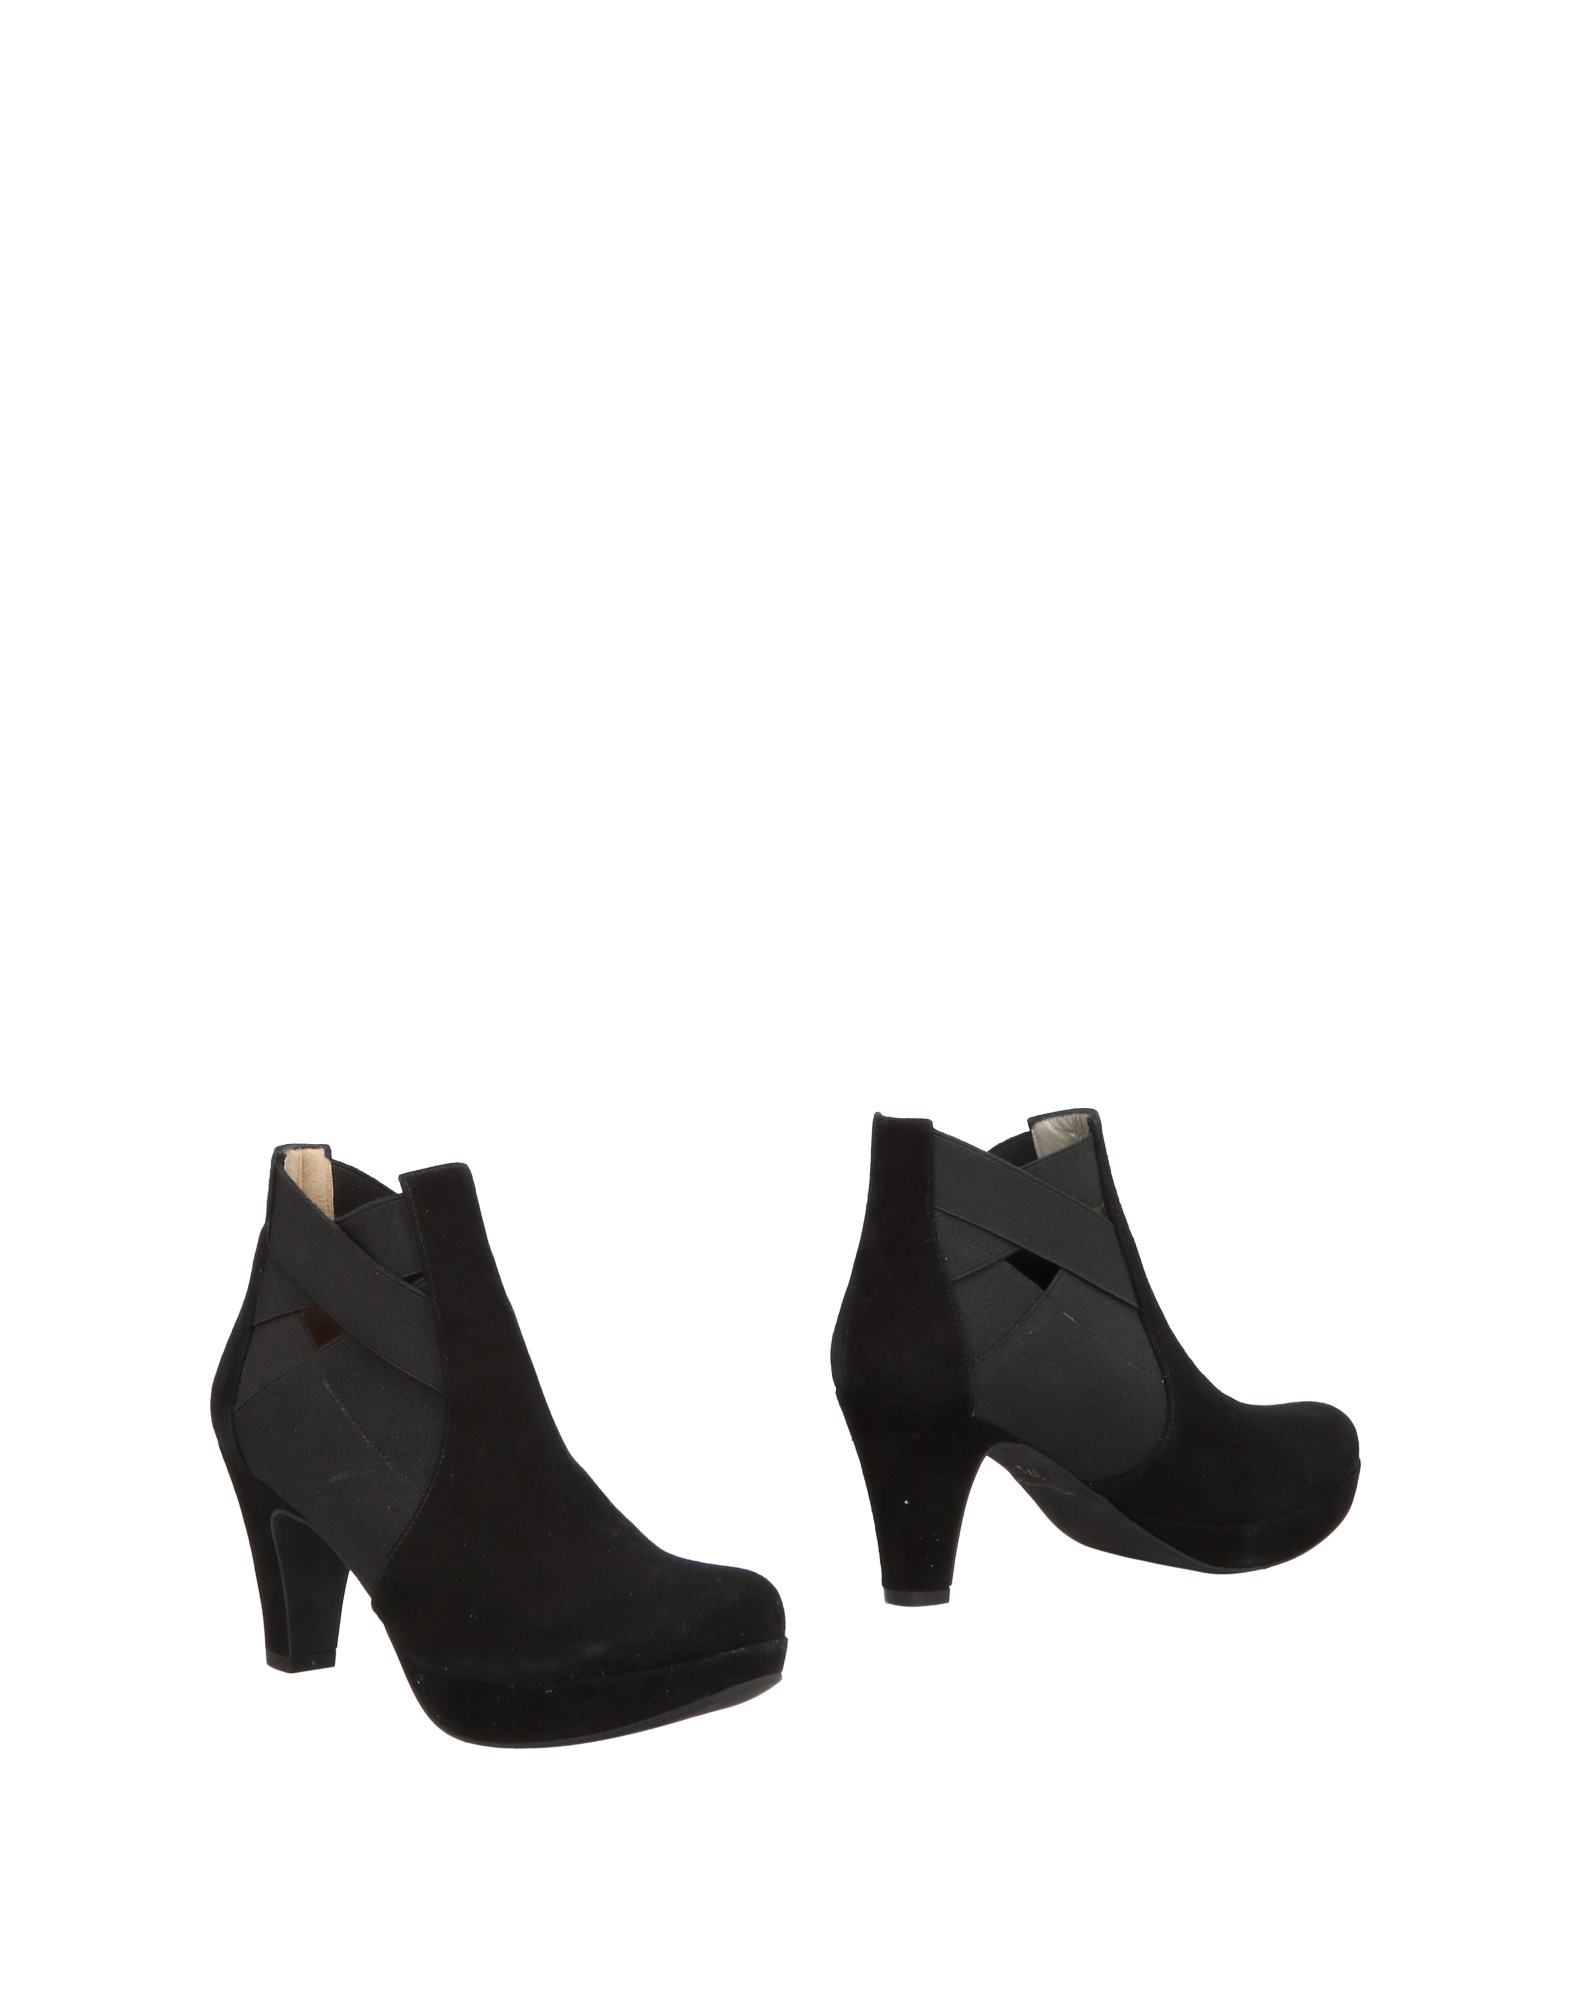 SILVIA ROSSI Ankle Boot in Black